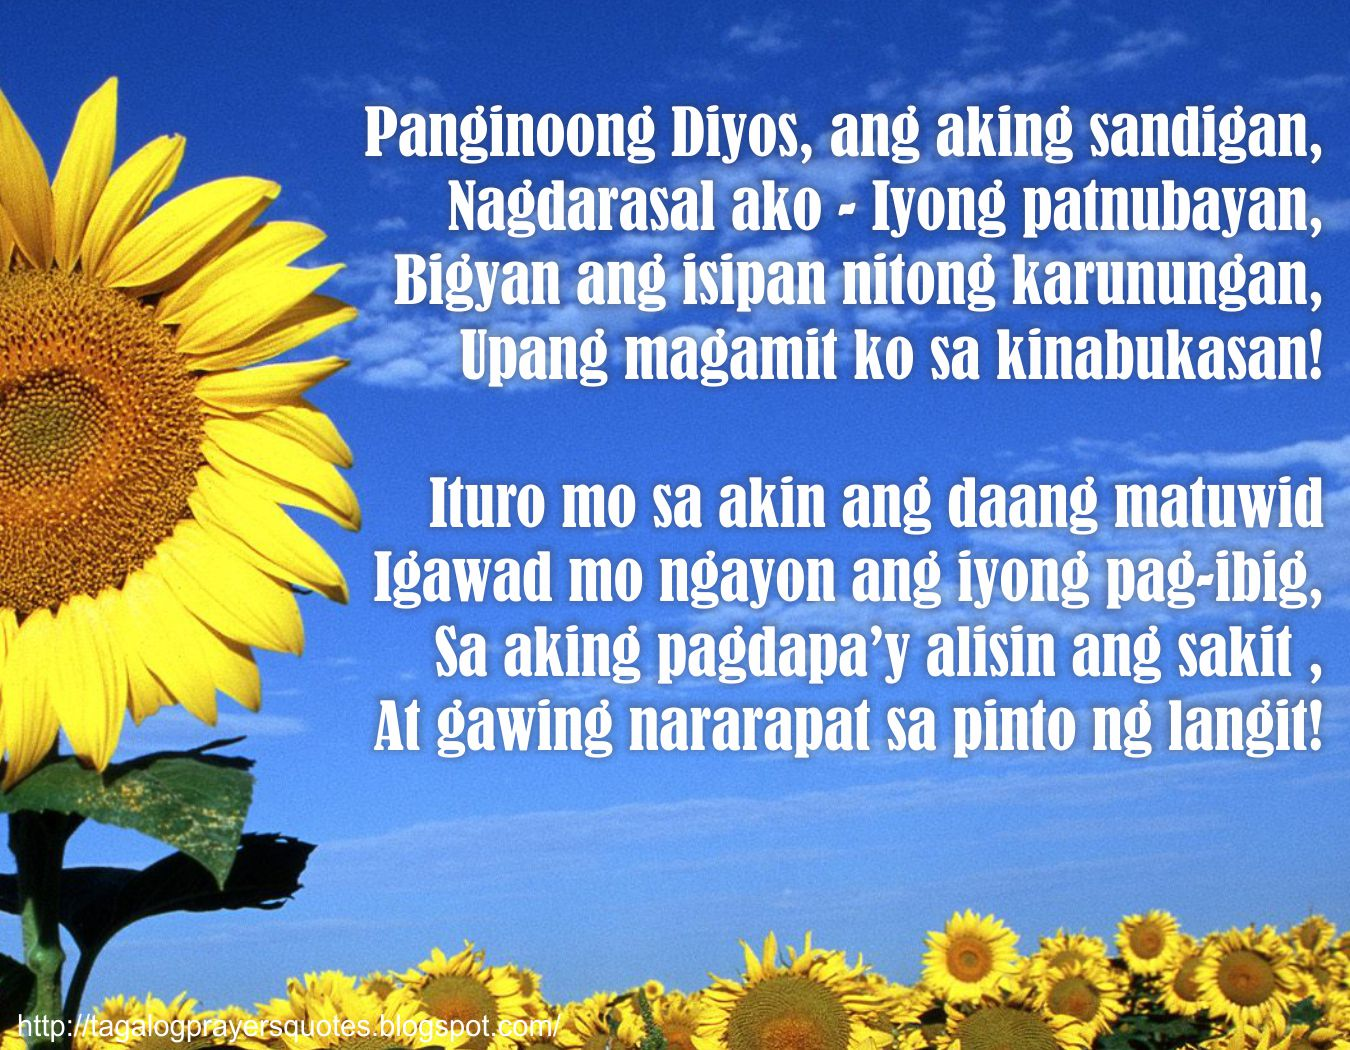 Tagalog Prayers and Christian Quotes: Tagalog Prayers for